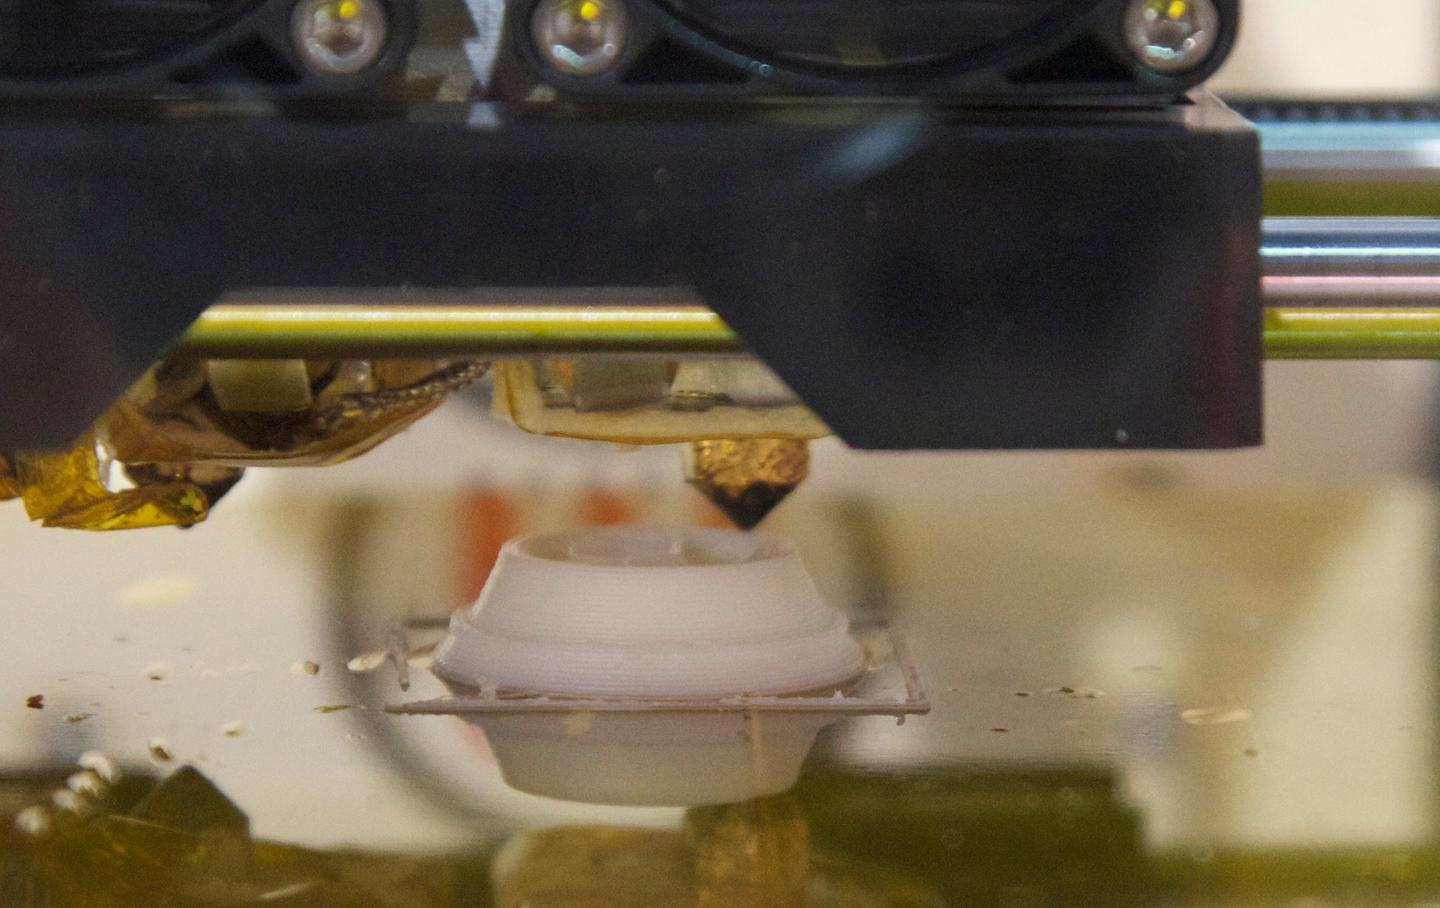 One of Replicator's two MakerBot Stepstruder's in action, at a print speed of 1.57-inches per second